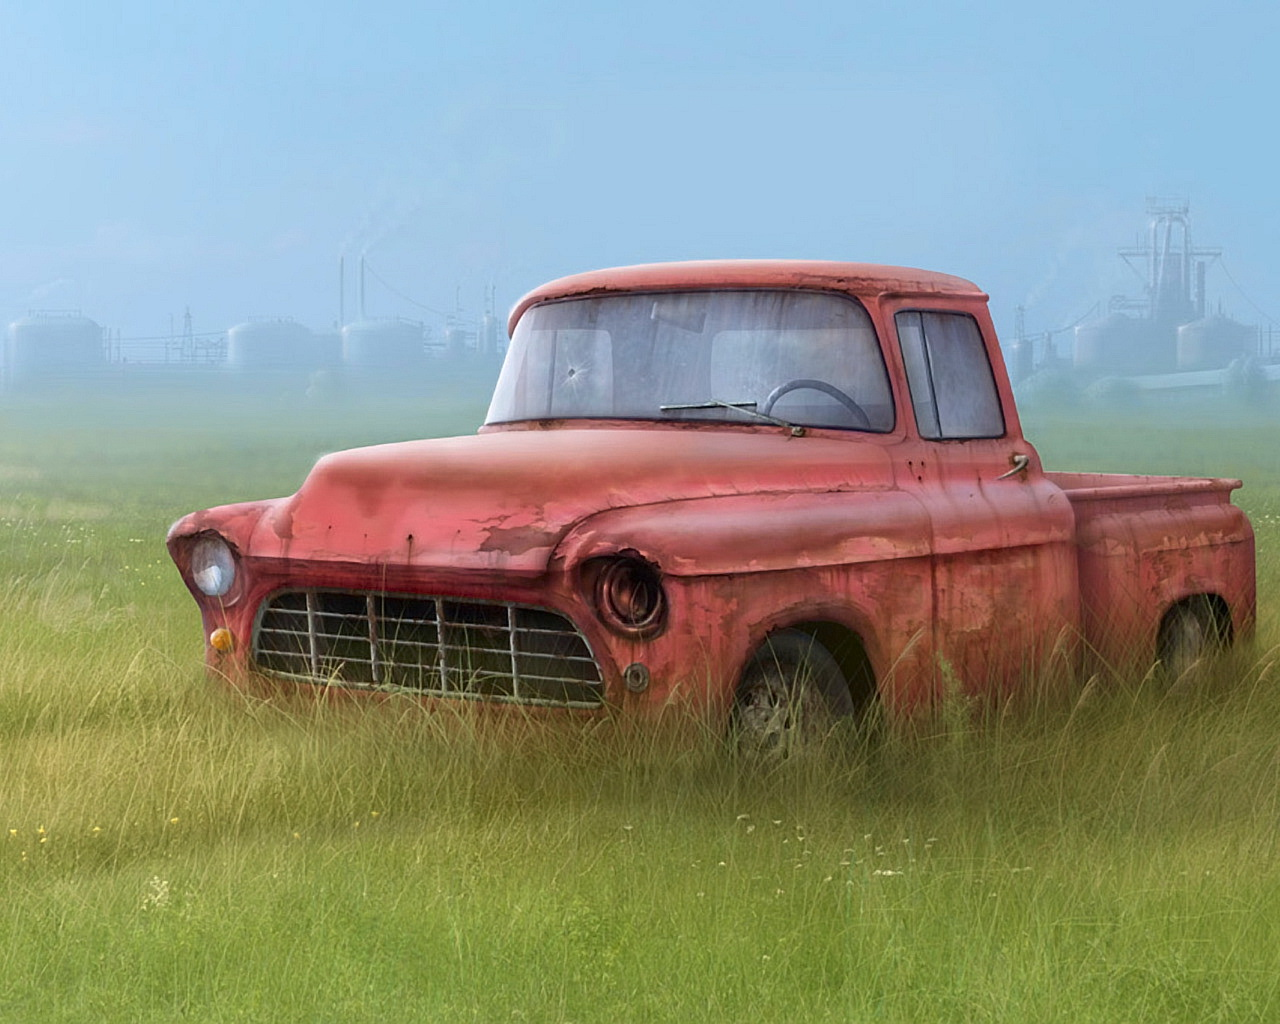 Old Car In The Grass   1280x1024   54 1280x1024